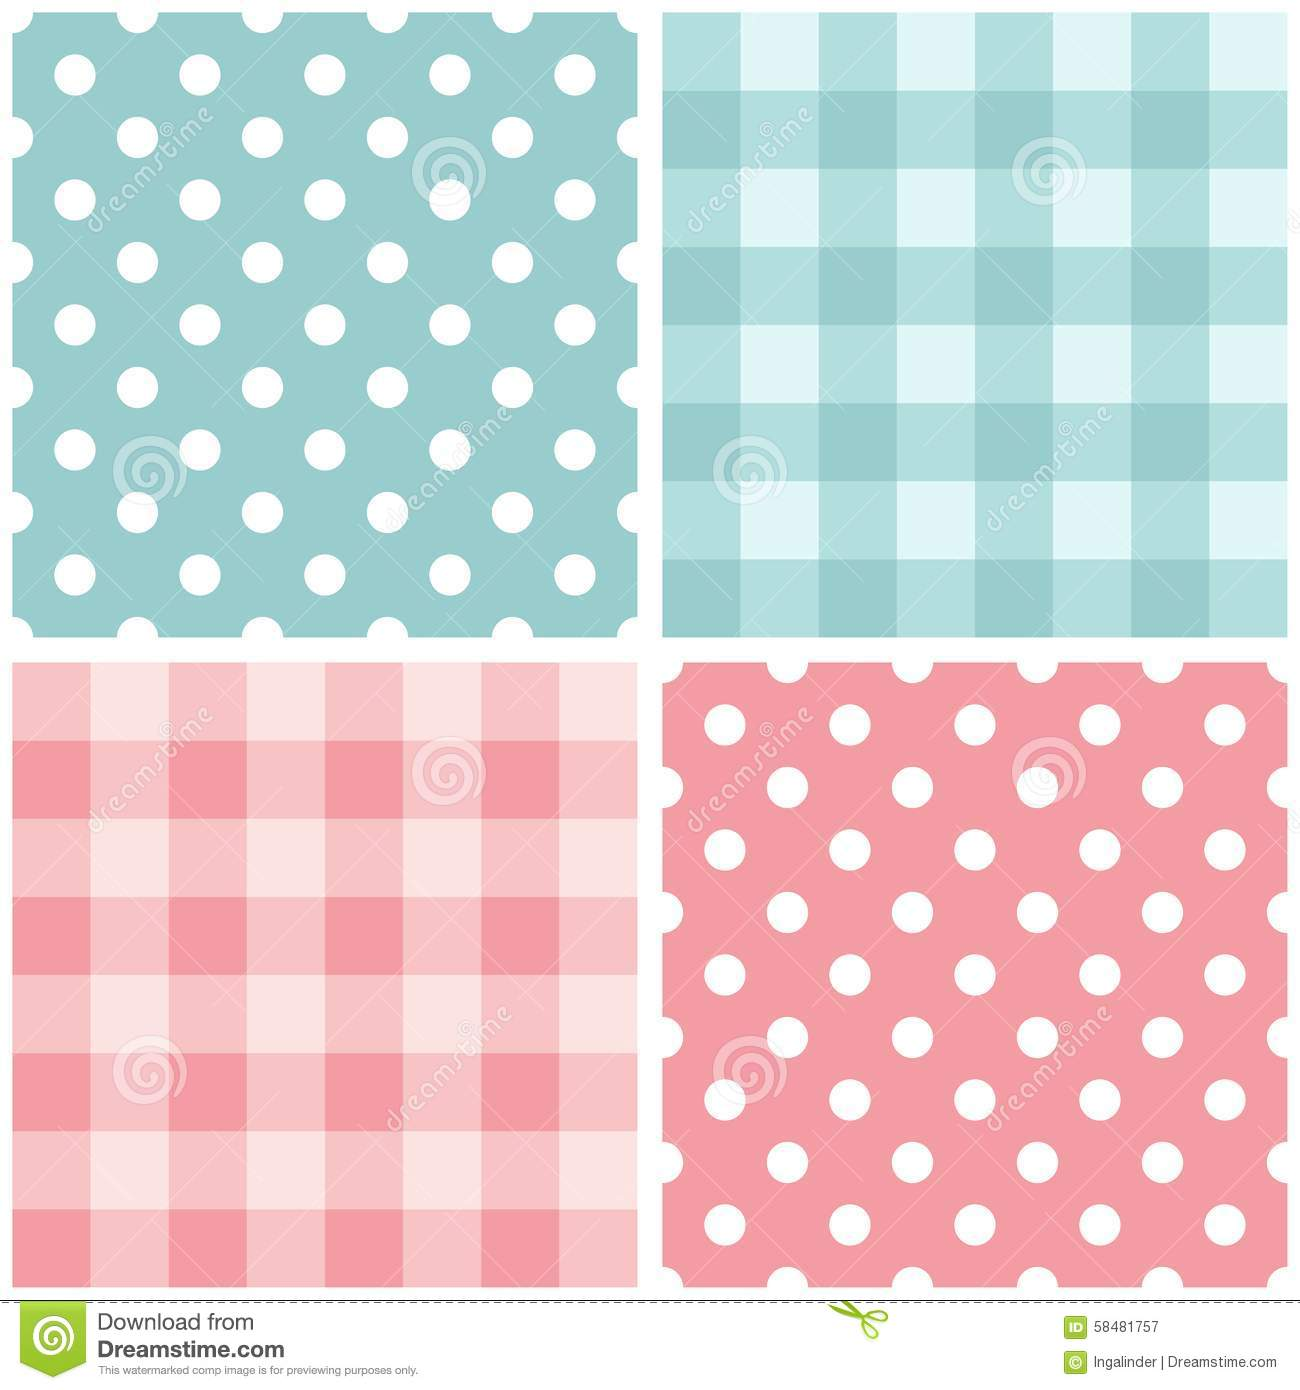 Tile Pink And Blue Vector Pattern Set With Polka Dots And